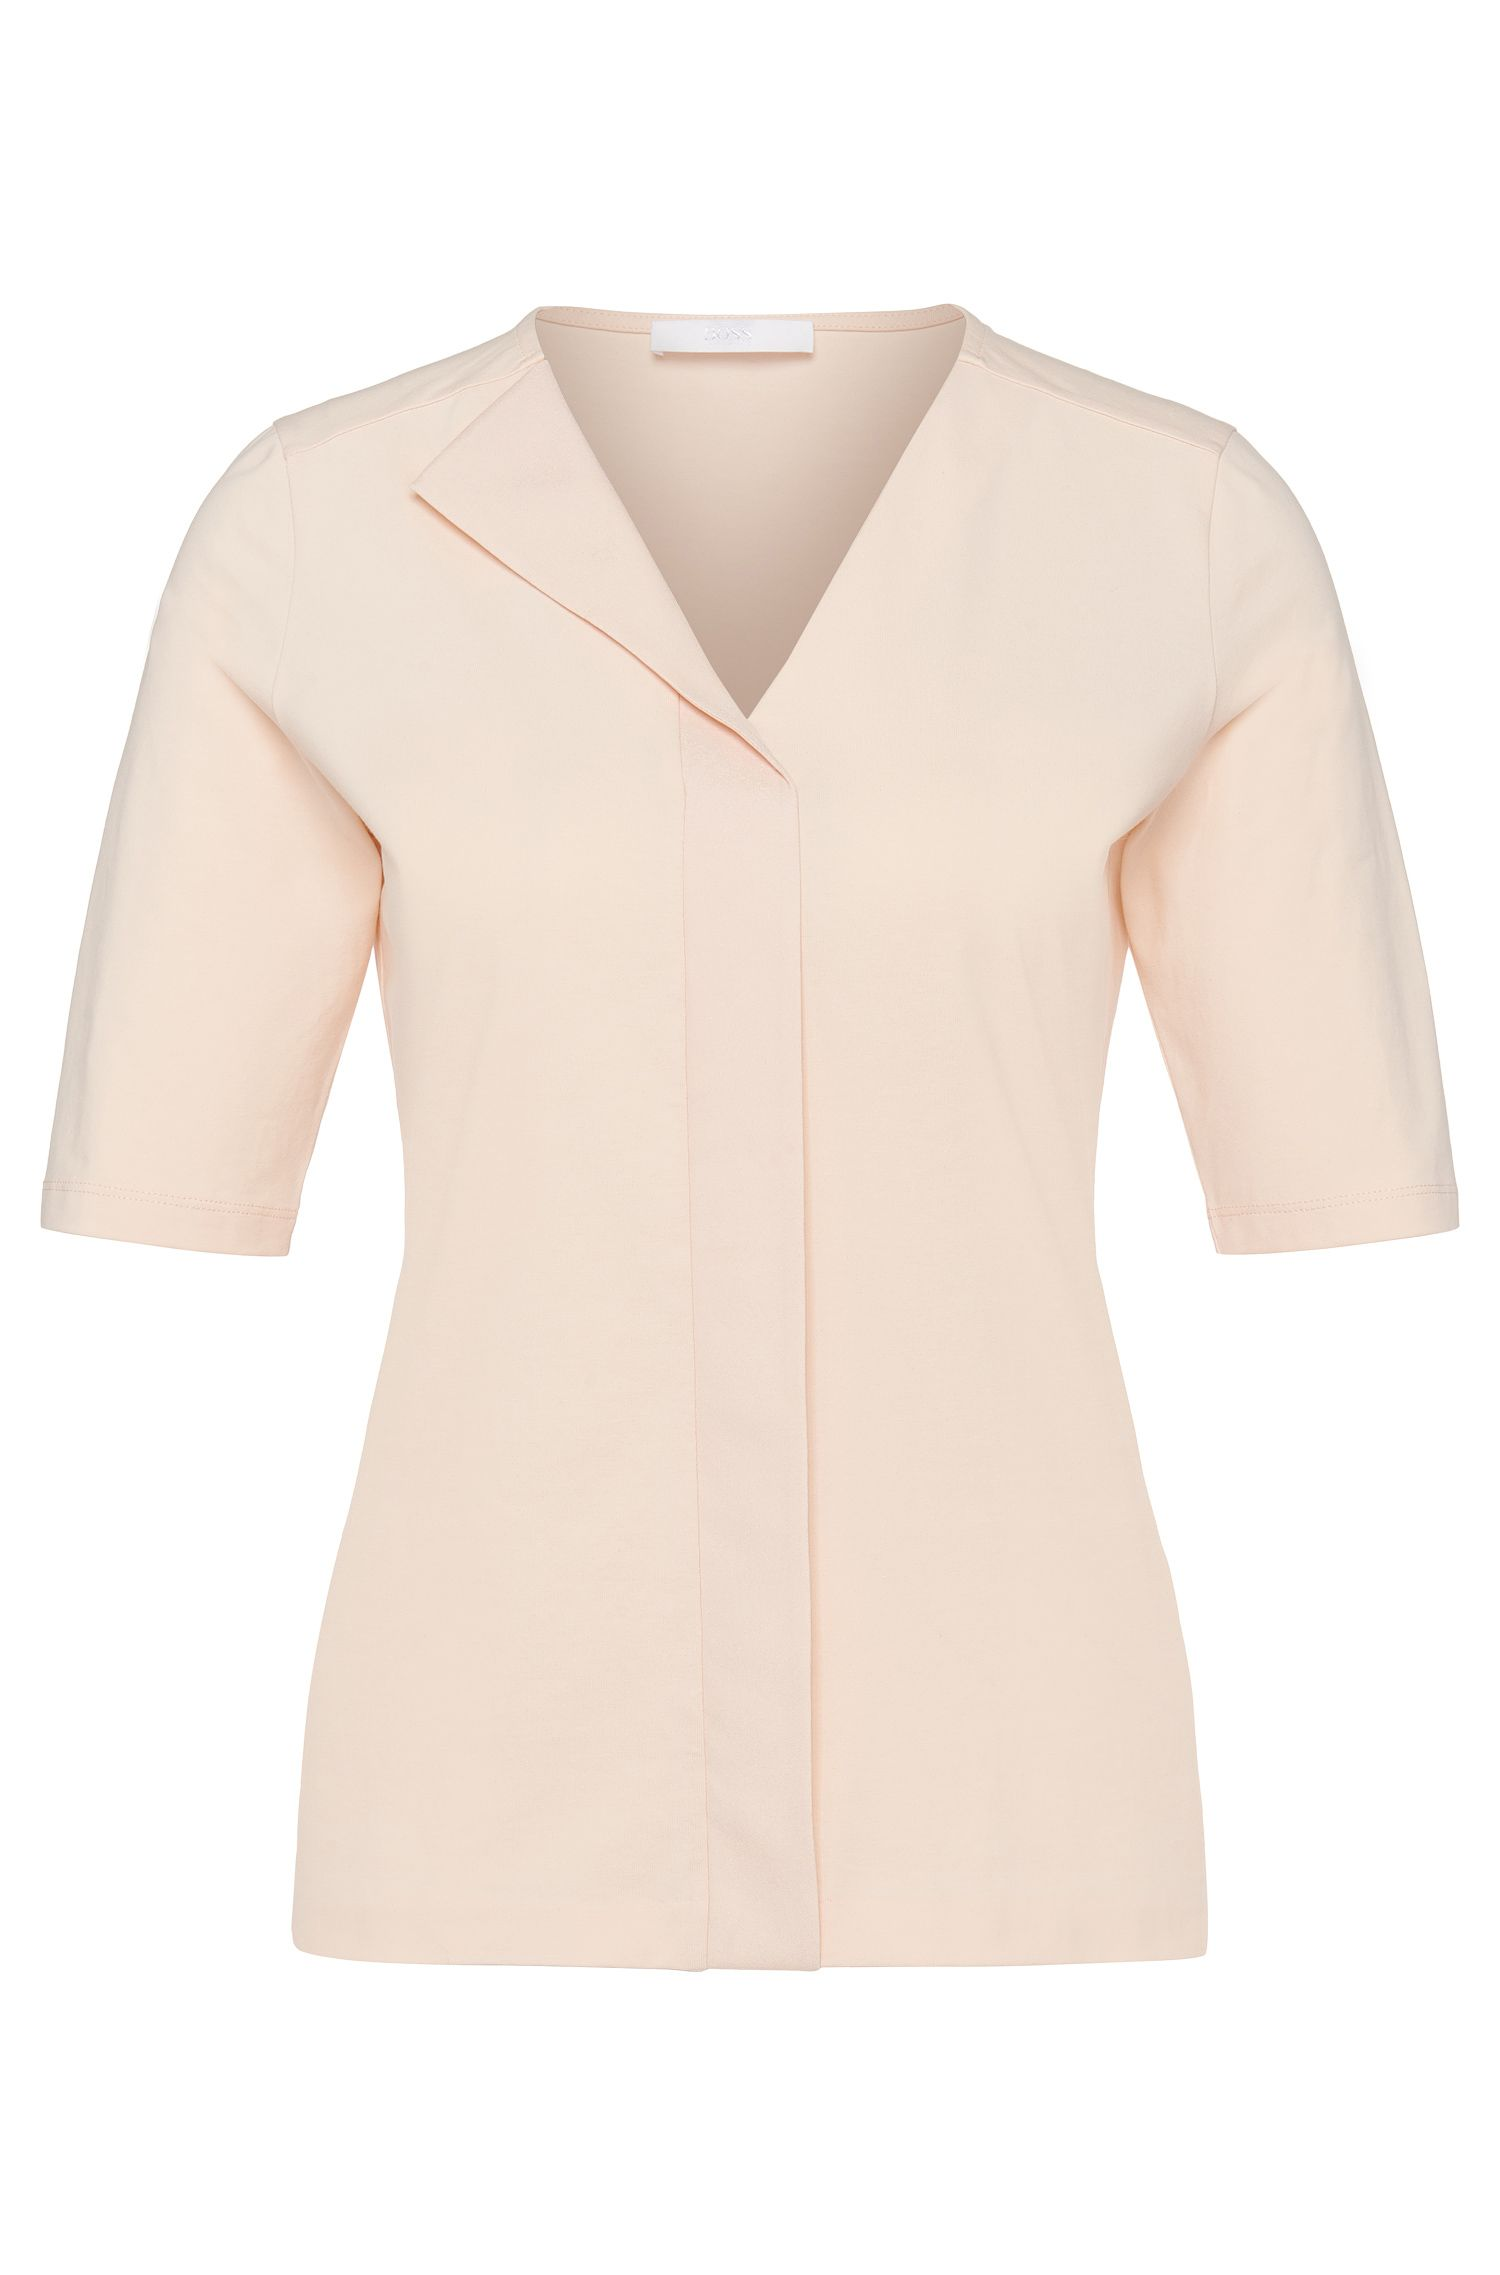 'Eskel' | Stretch Cotton Layered V-neck Blouse